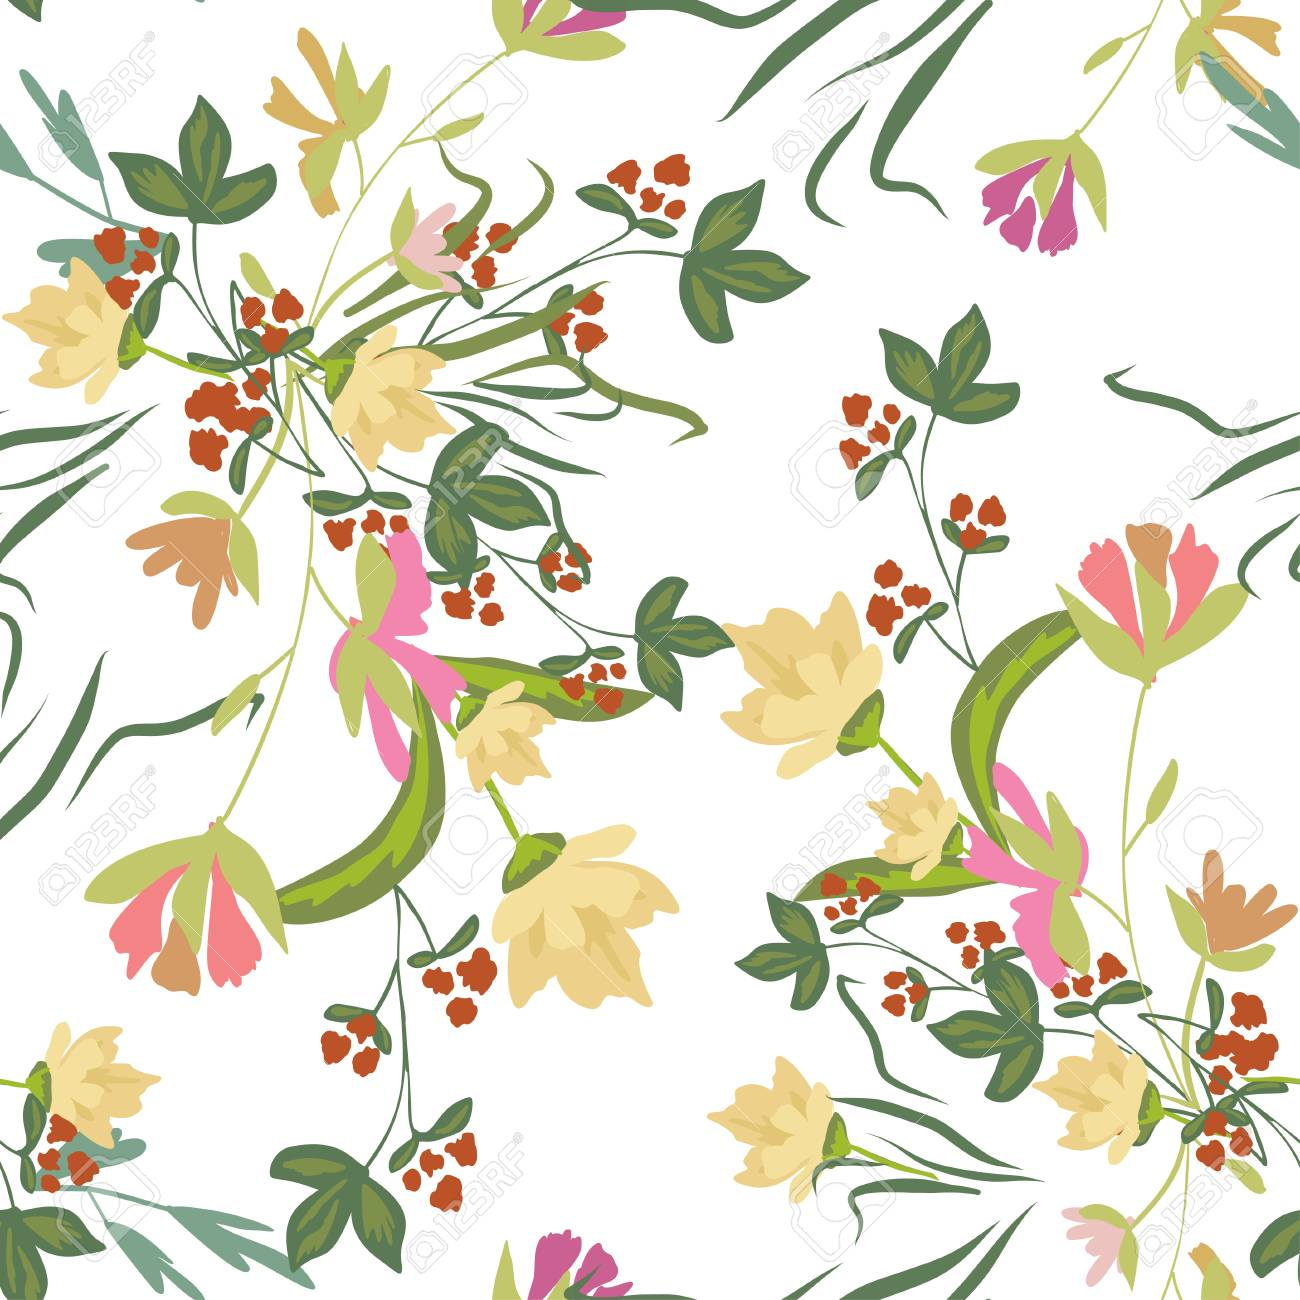 Seamless Pattern With Small Flowers On A White Background Modern